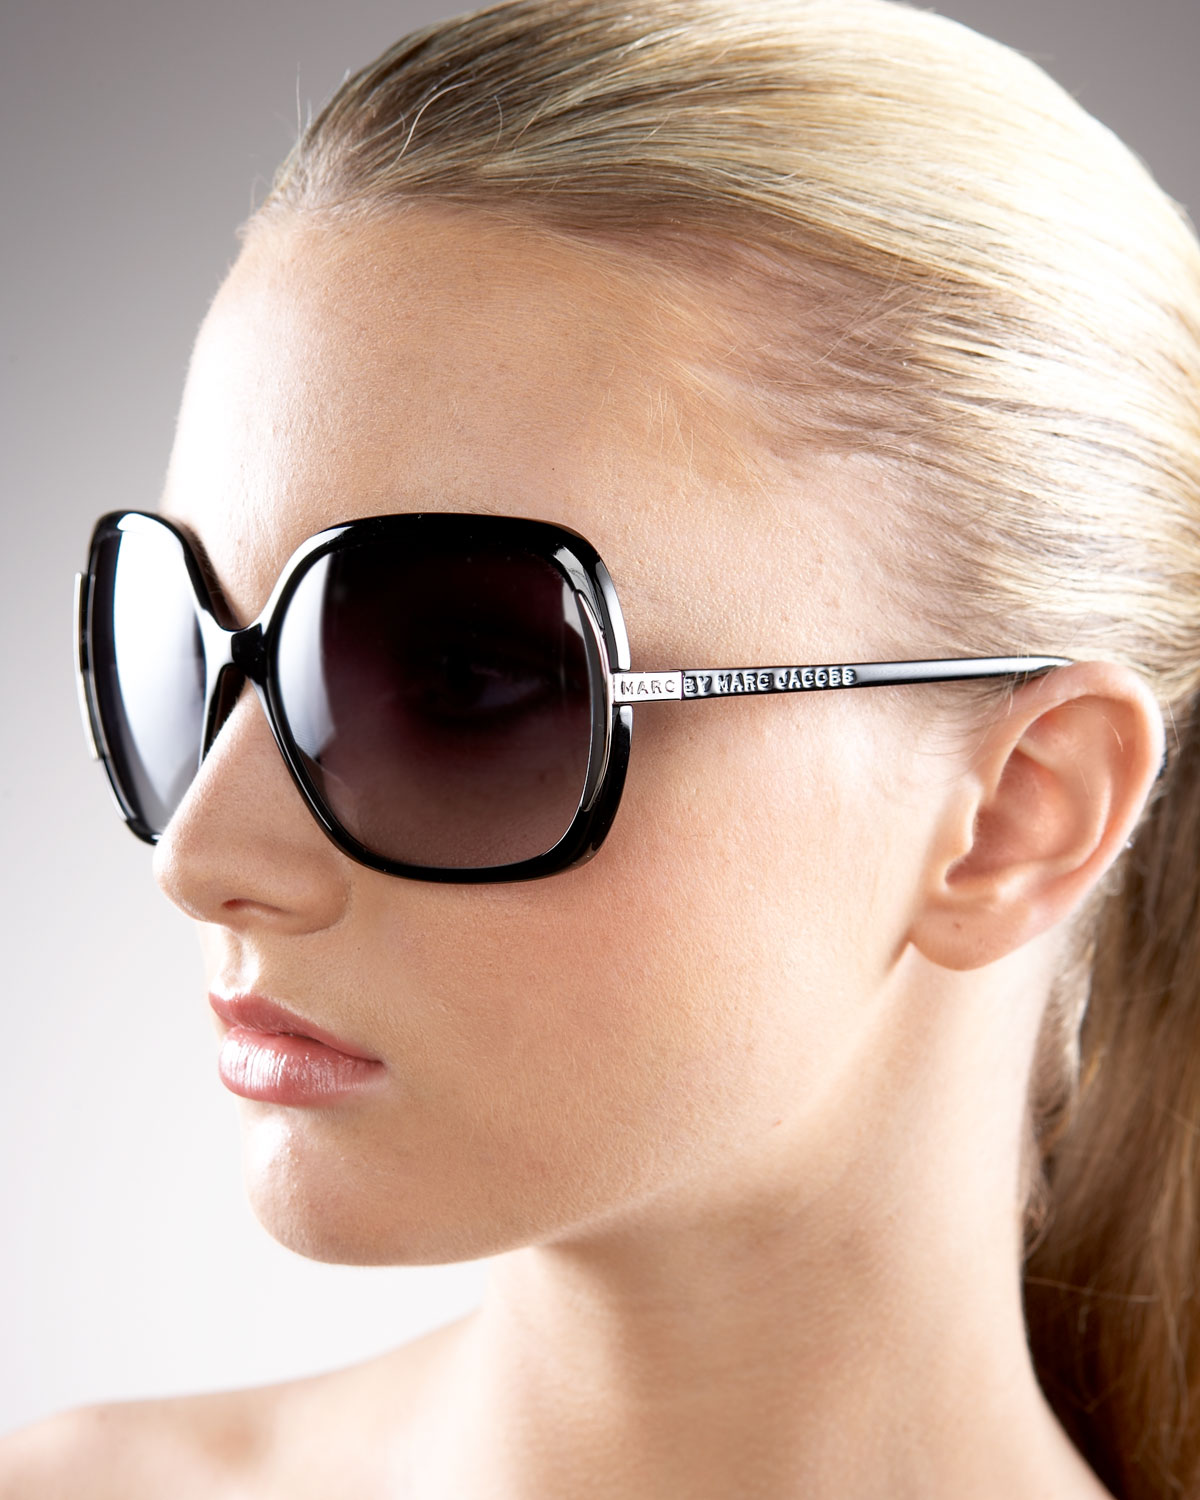 395ca93ad1d23 Marc By Marc Jacobs Thin Square Plastic Sunglasses in Black - Lyst